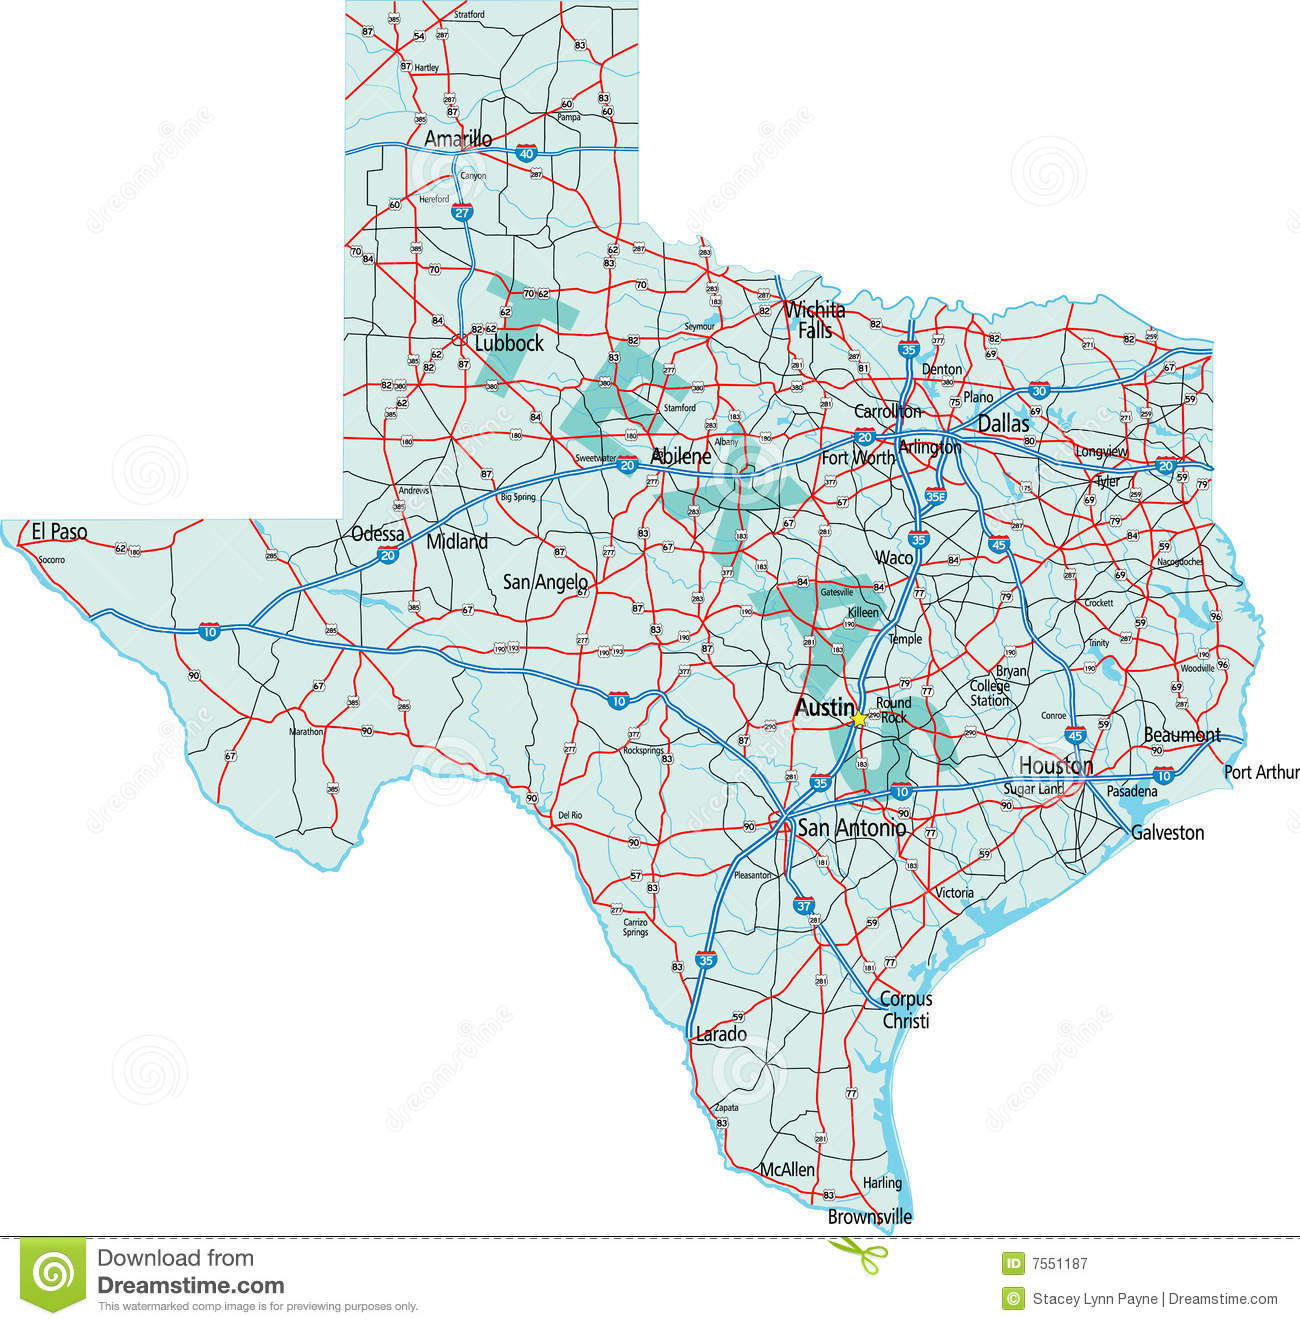 Texas Interstate Map Stock Vector. Illustration Of Dallas - 7551187 - Free Texas Highway Map